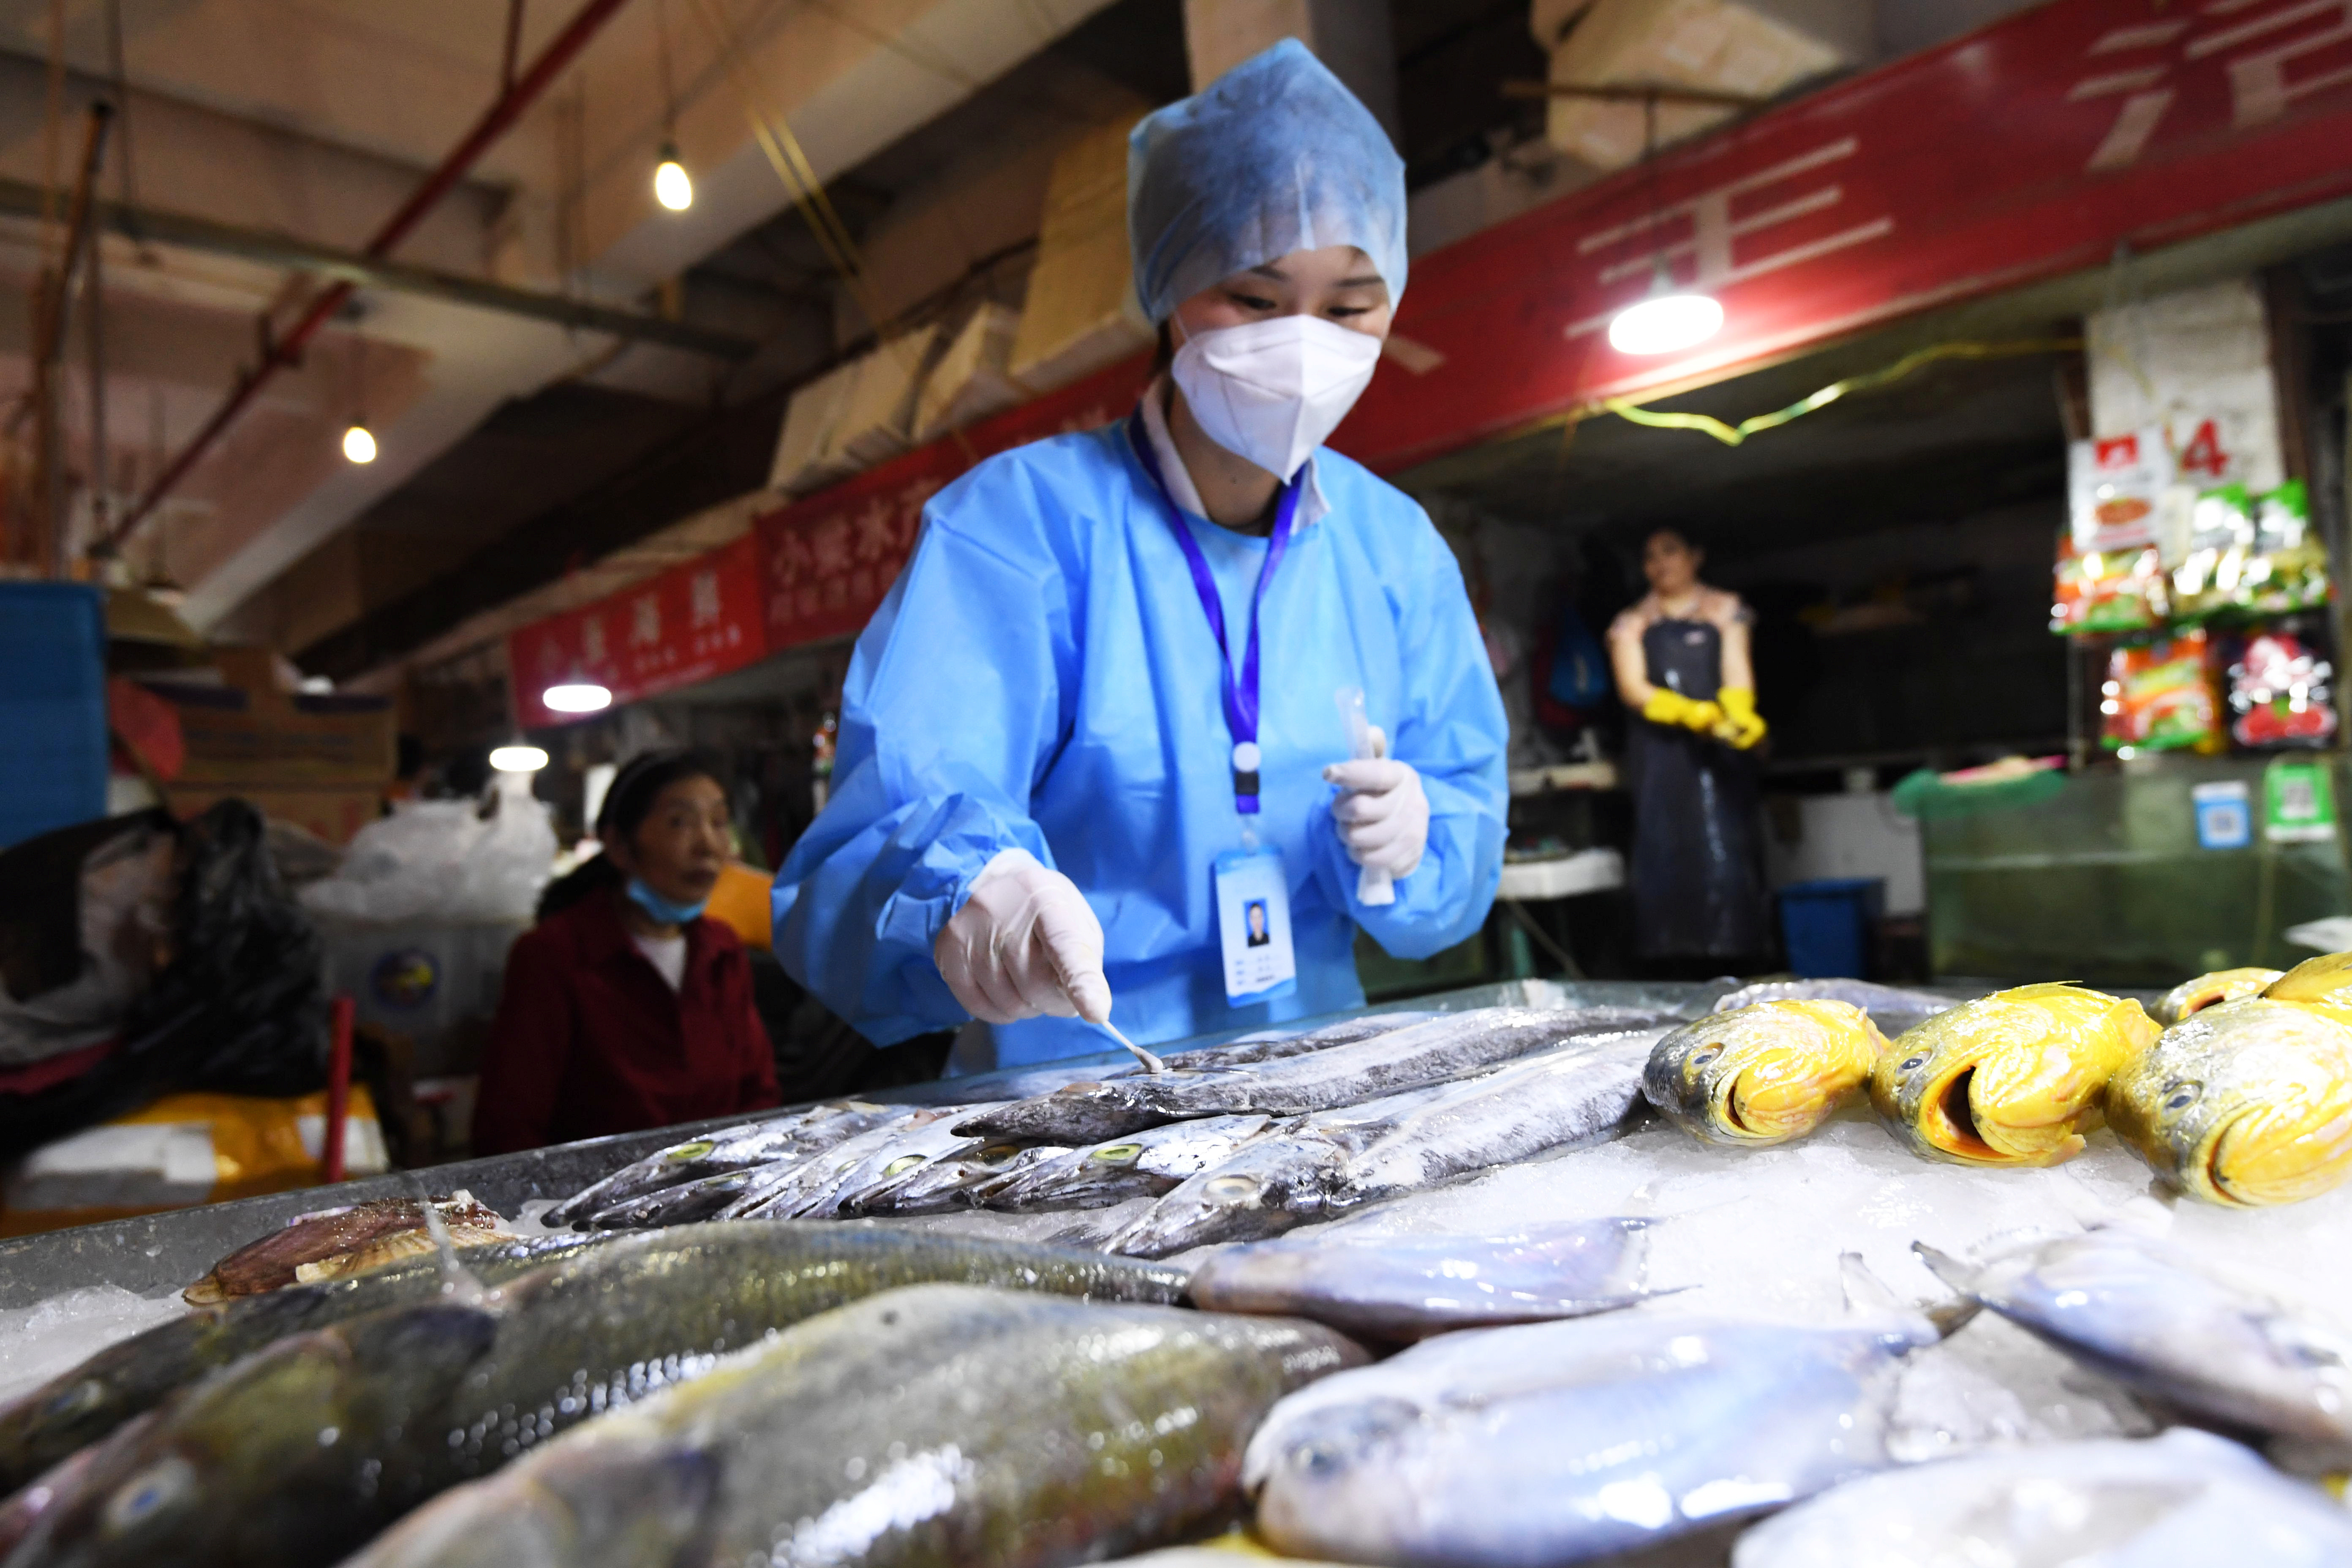 A staff member of Nanming district's Center for Disease Control and Prevention collects a swab from frozen fish for nucleic acid testing following the coronavirus disease (COVID-19) outbreak, at Wandong market in Guiyang, Guizhou province, China July 1, 2020. Picture taken July 1, 2020. cnsphoto via REUTERS   ATTENTION EDITORS - THIS IMAGE WAS PROVIDED BY A THIRD PARTY. CHINA OUT. - RC2HLH9NR80A